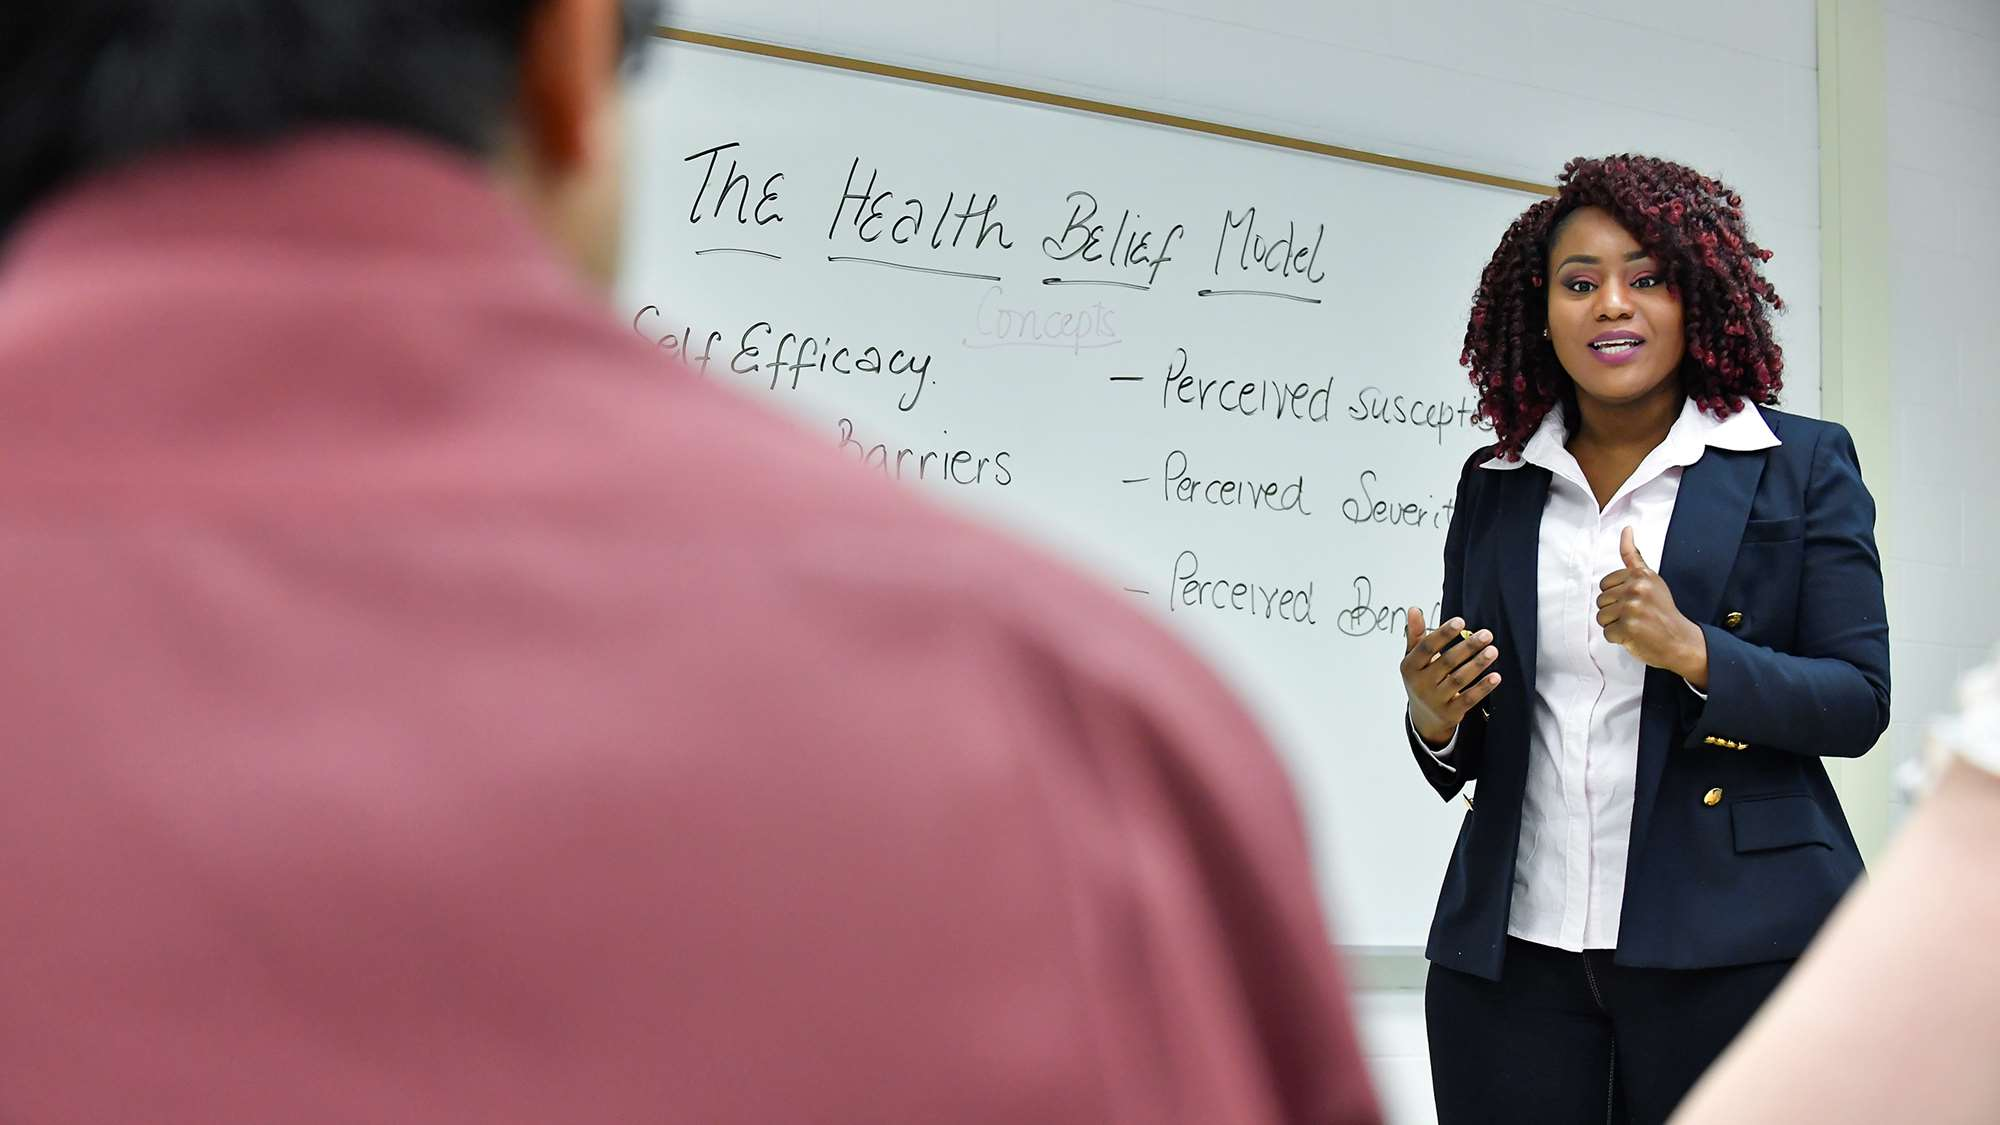 School of Public Health student presenting in a classroom.